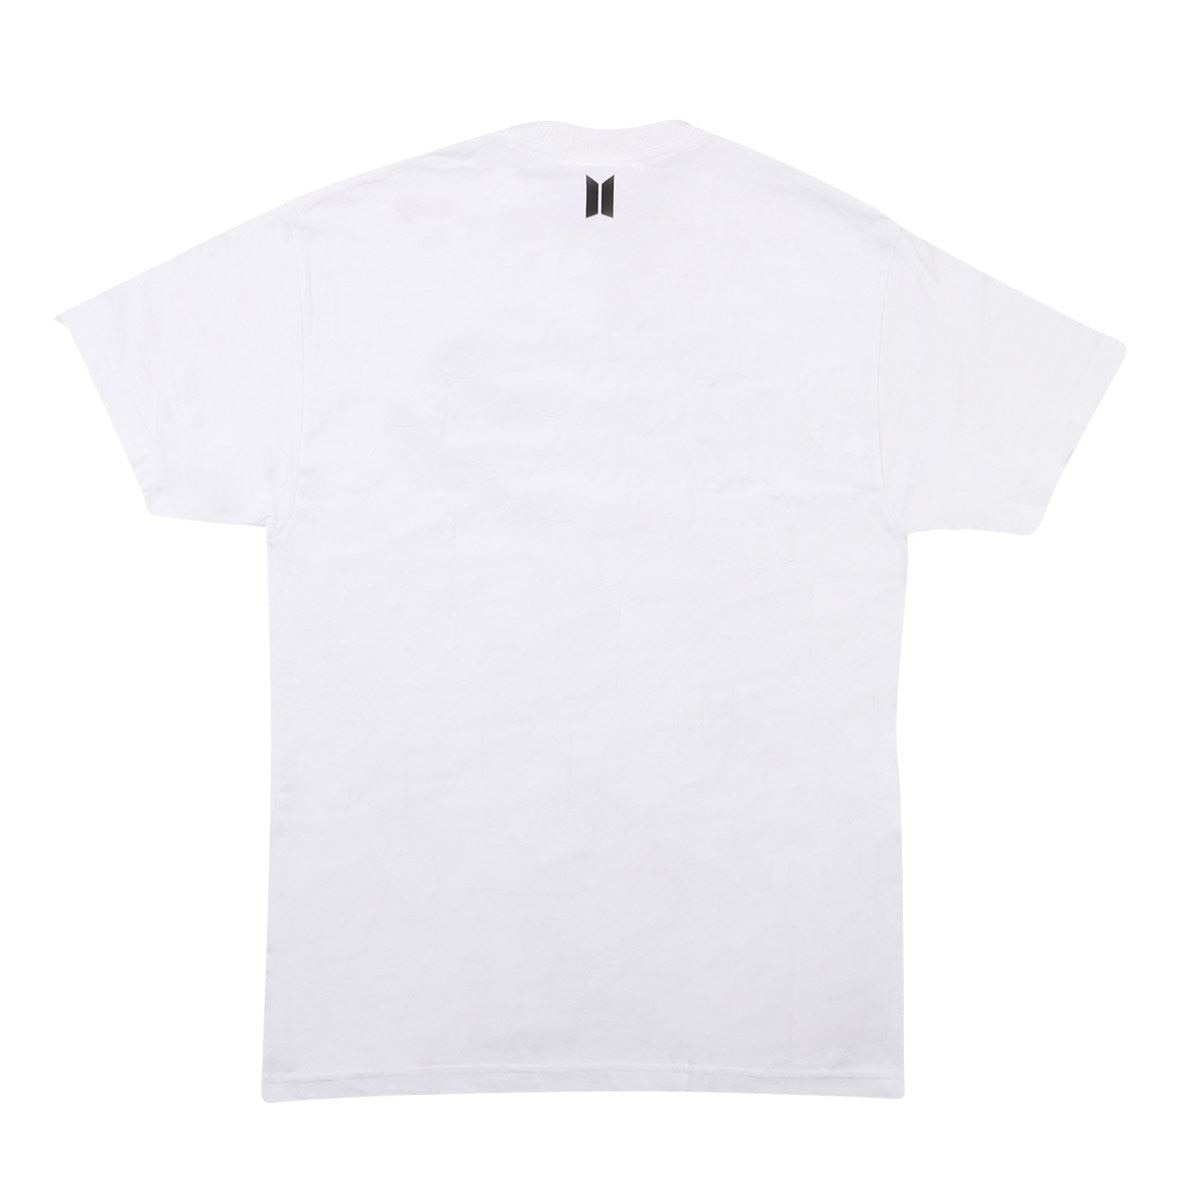 Camiseta Ciudad - blanco / City Tee - white